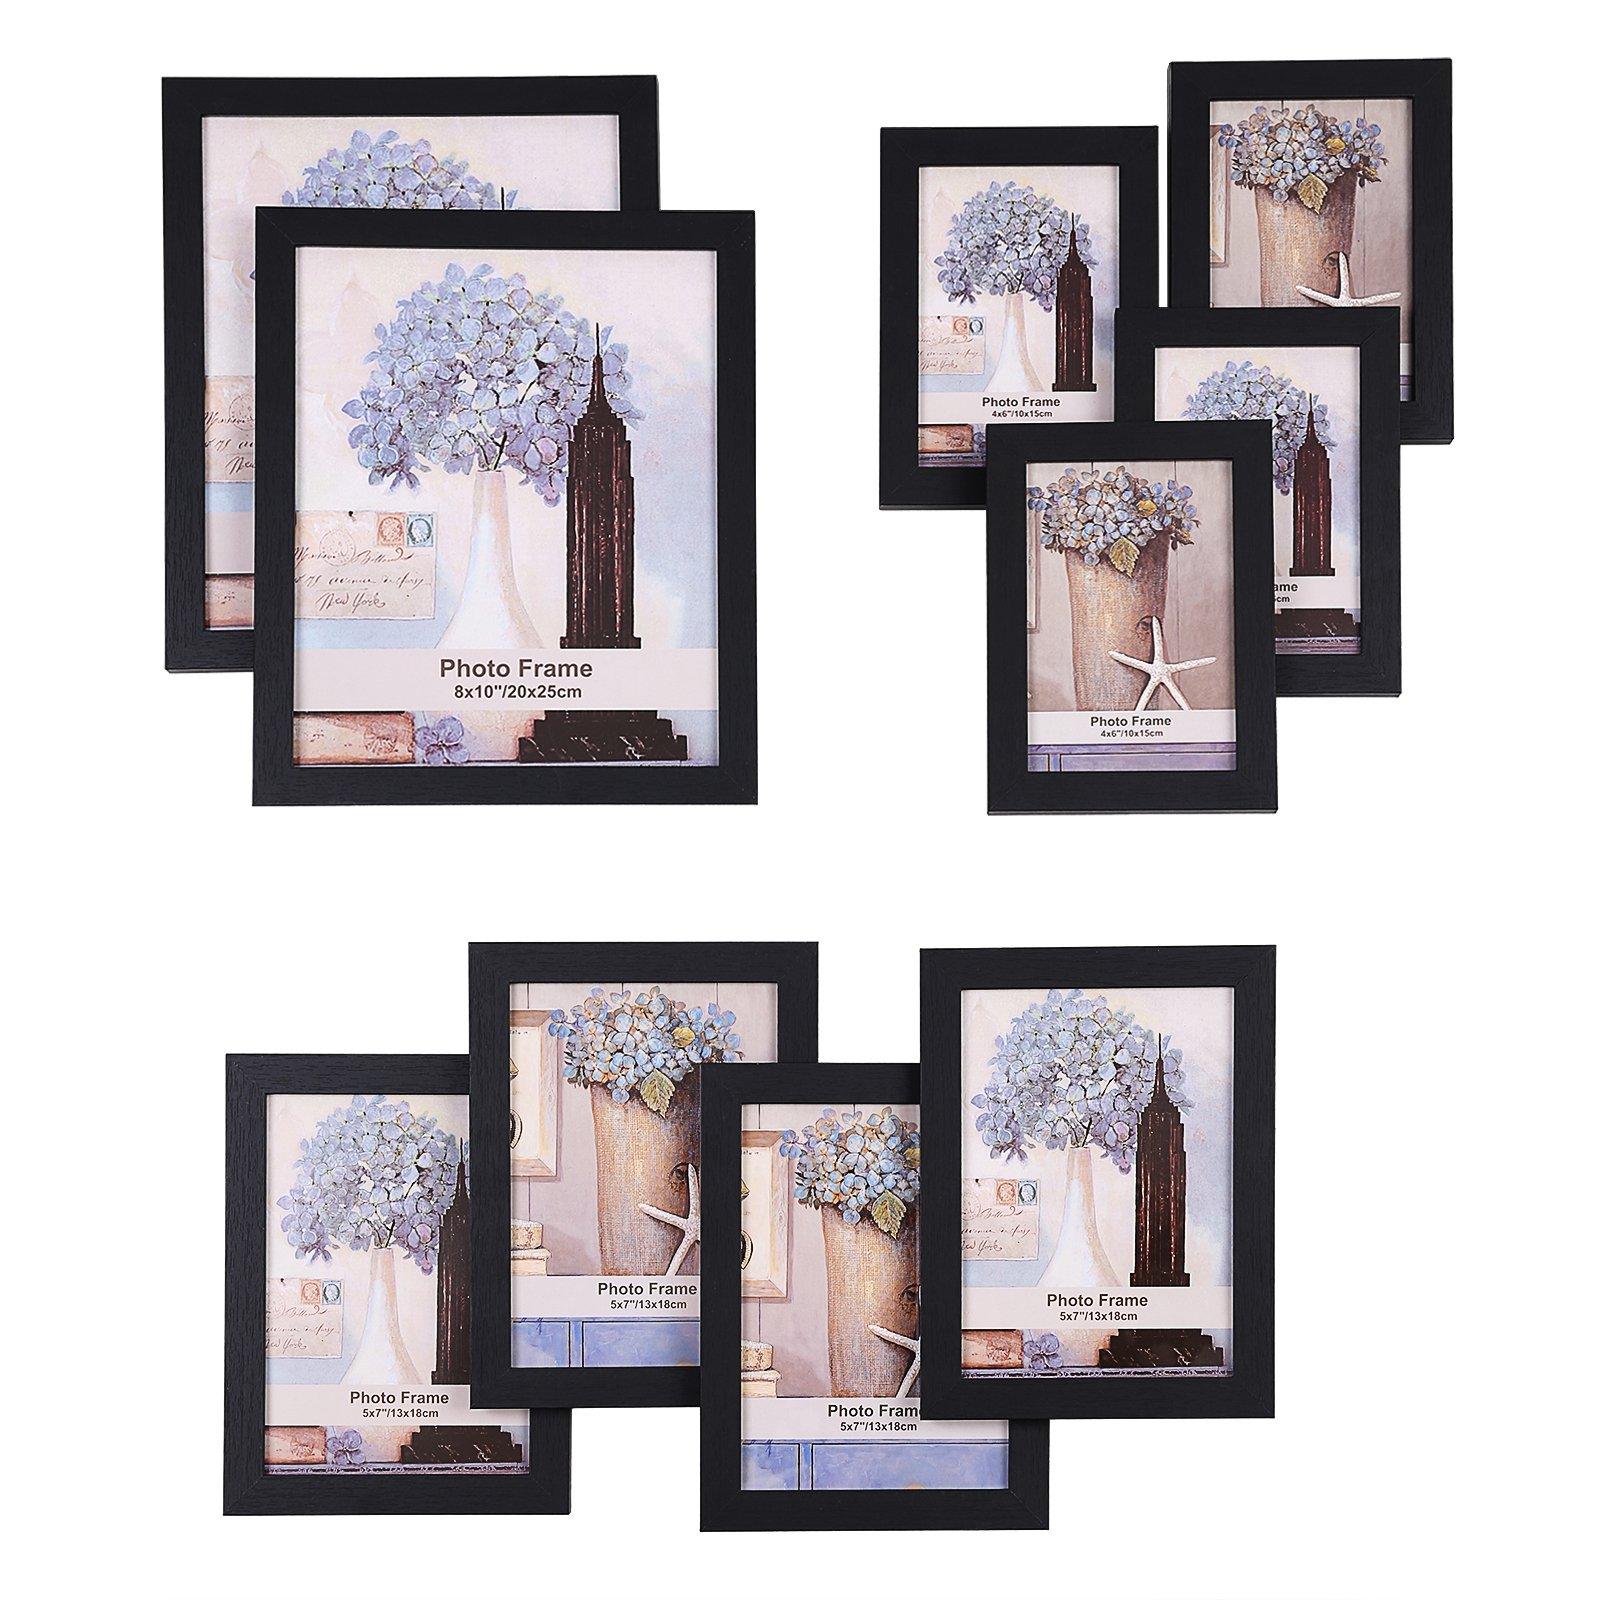 SONGMICS Picture Frames Set of 10 Frames with Glass Front - Two 8x10 in, Four 5x7 in, Four 4x6 in, Collage Photo Frames Wood Grain Black URPF10B by SONGMICS